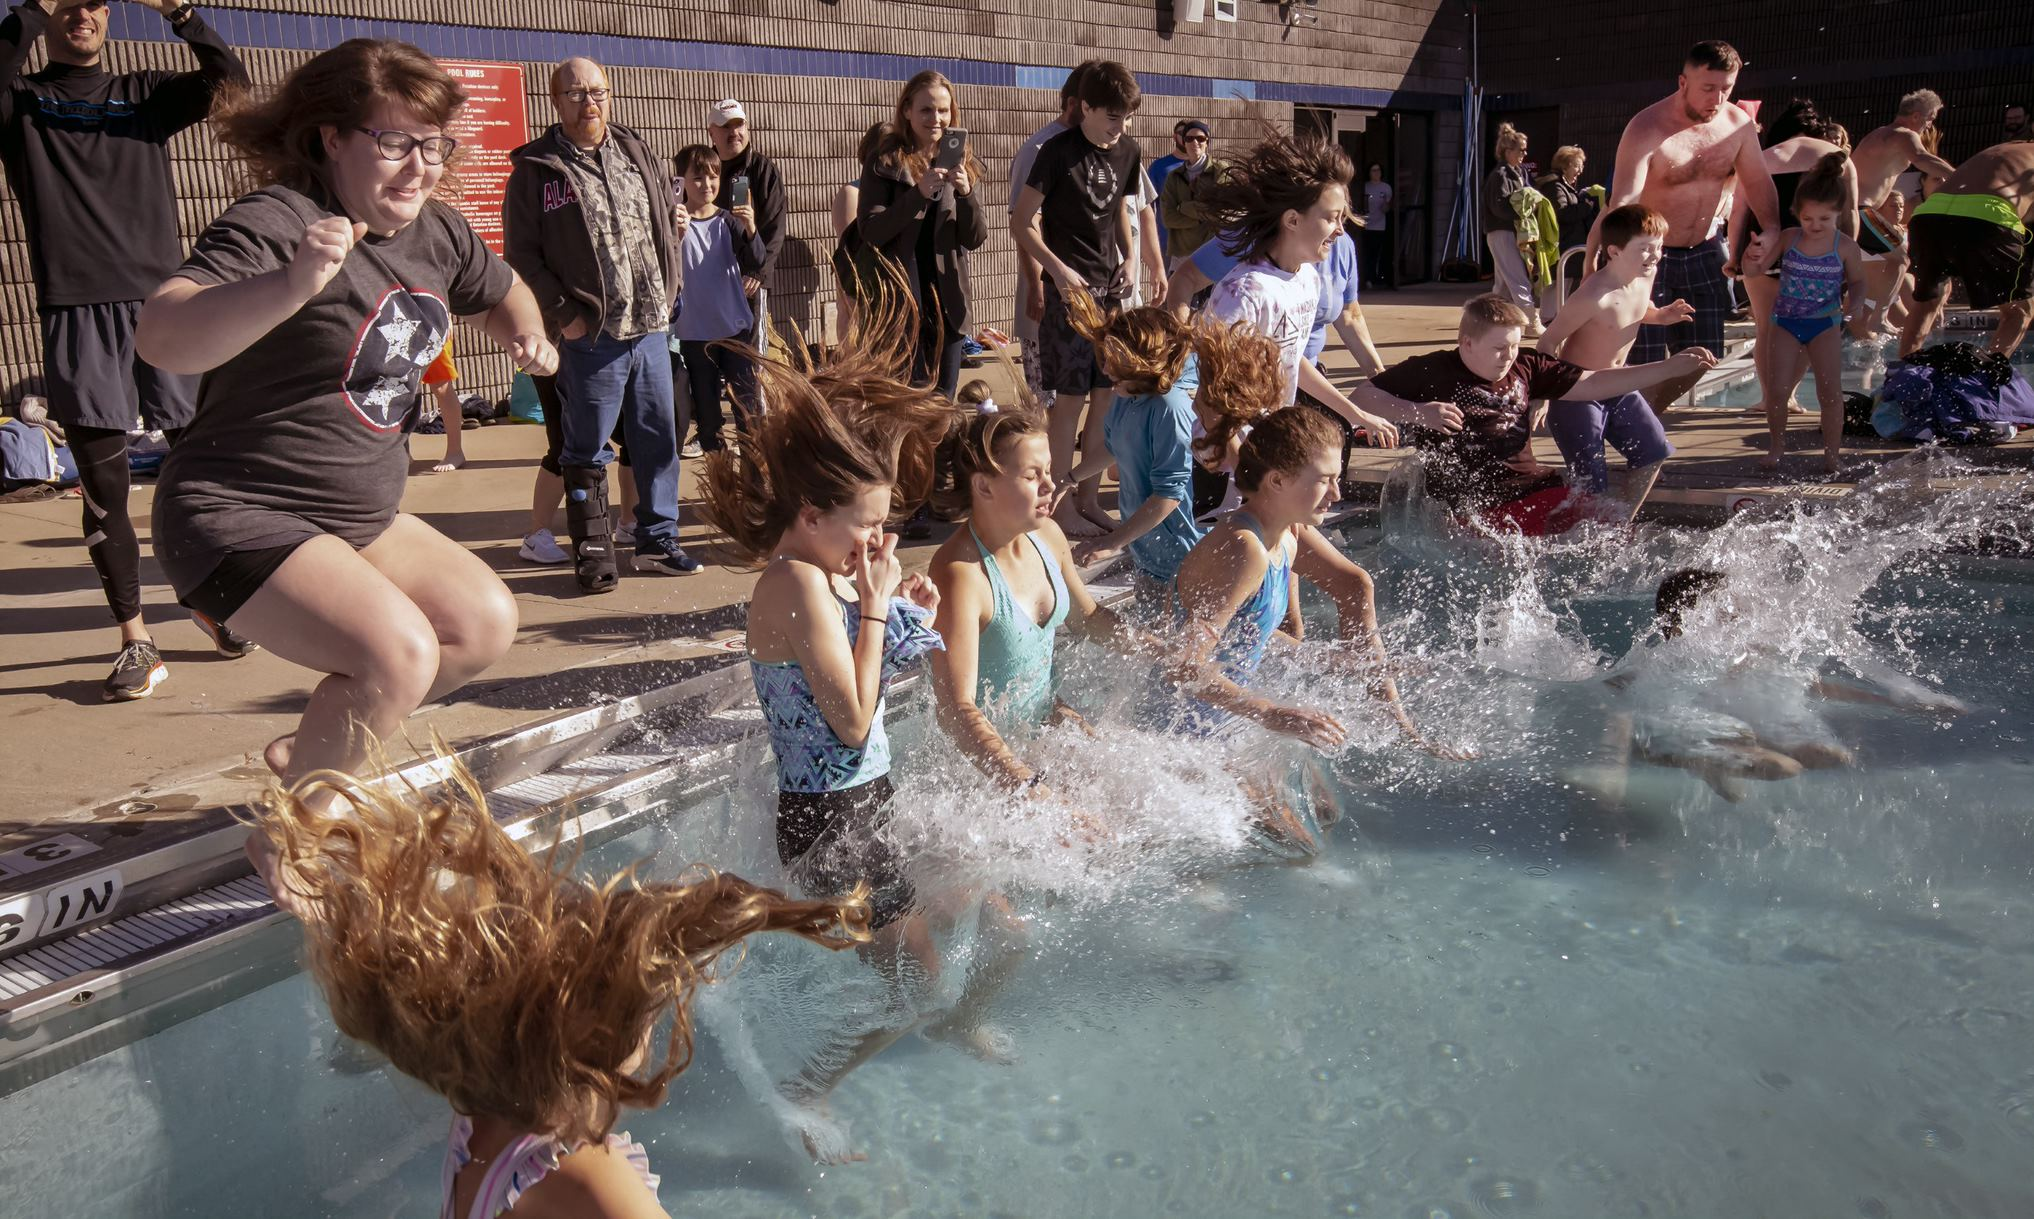 The outdoor swim in the frigid SportsCom pool will take place this coming Saturday in Murfreesboro. The plunge is scheduled to start at precisely 10 in the morning on January 4, 2020.